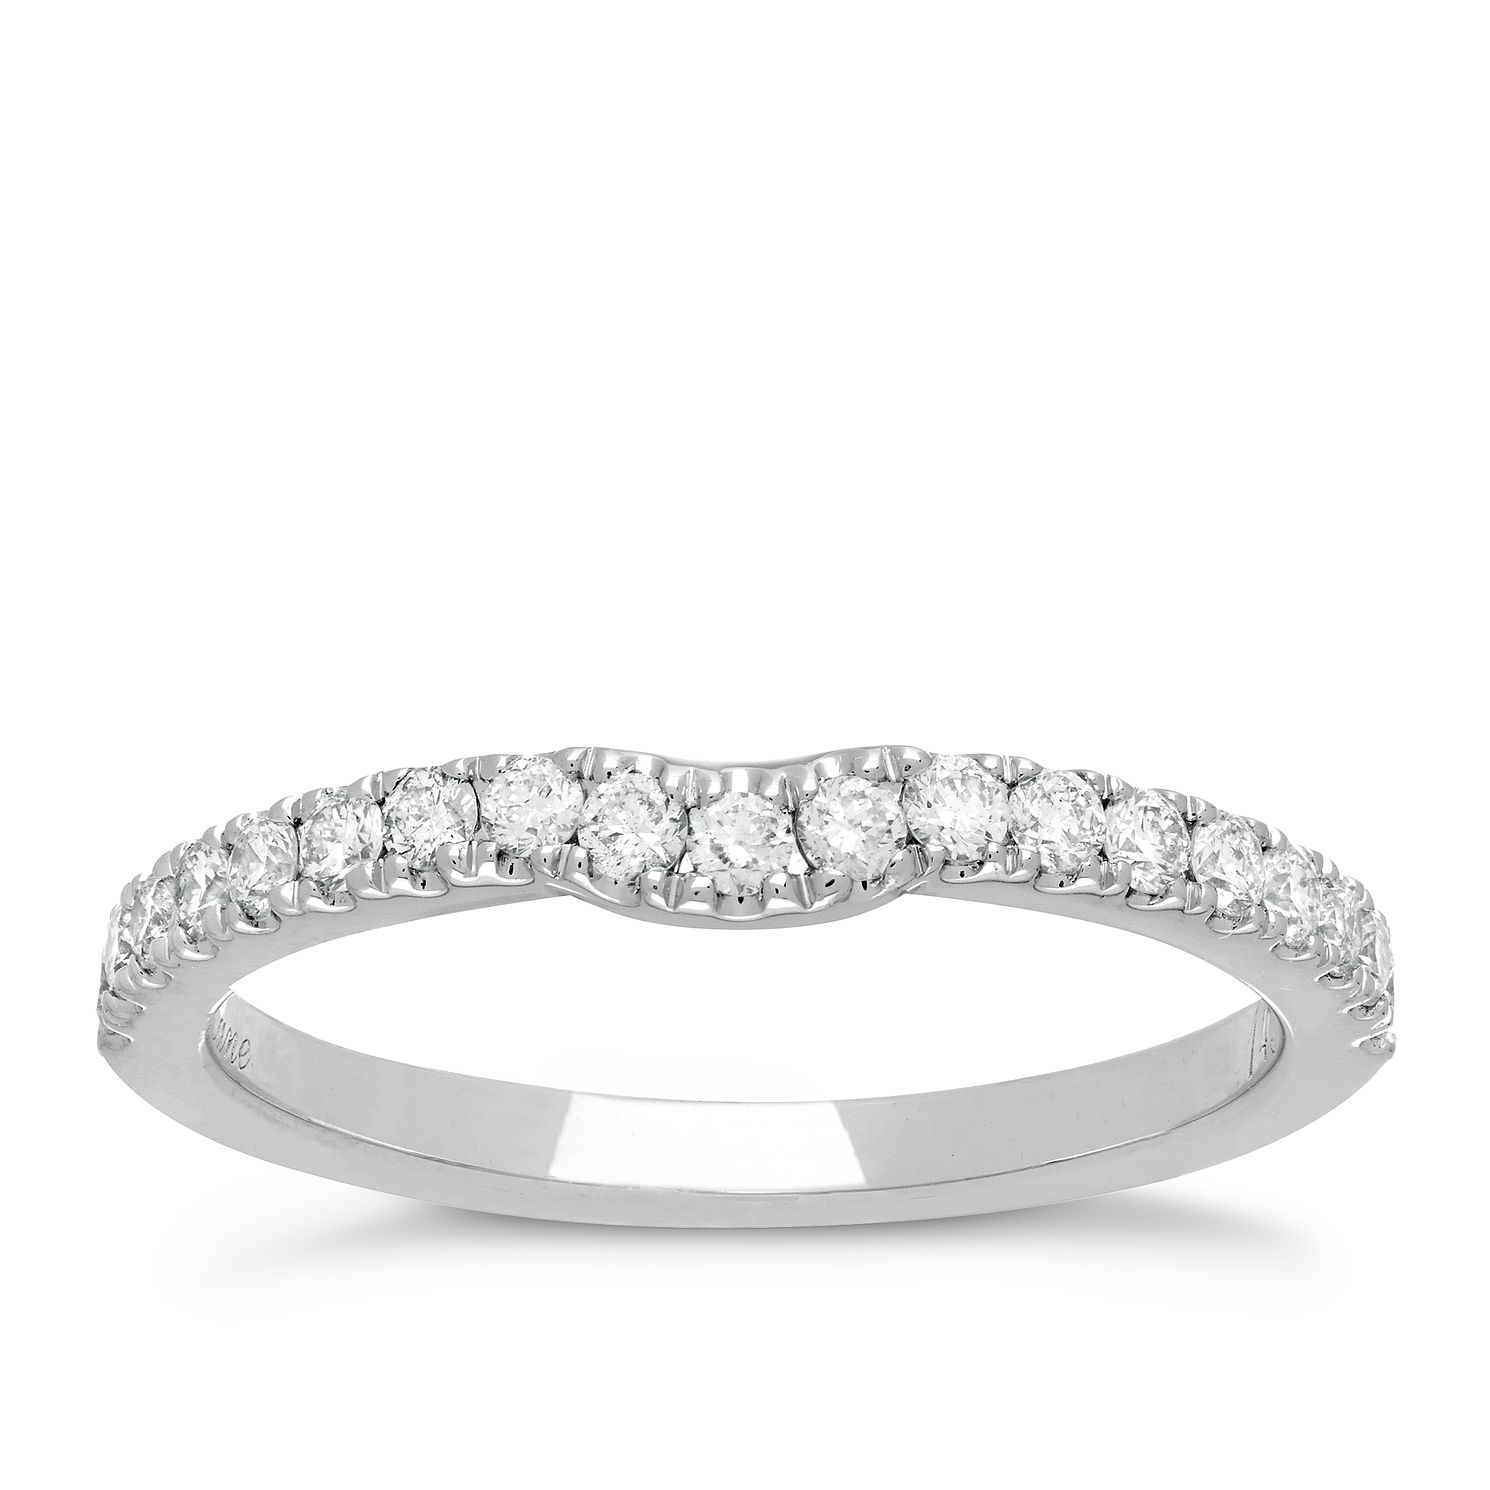 Neil Lane 14ct White Gold 35Pt Diamond Shaped Band - Product number 2934663